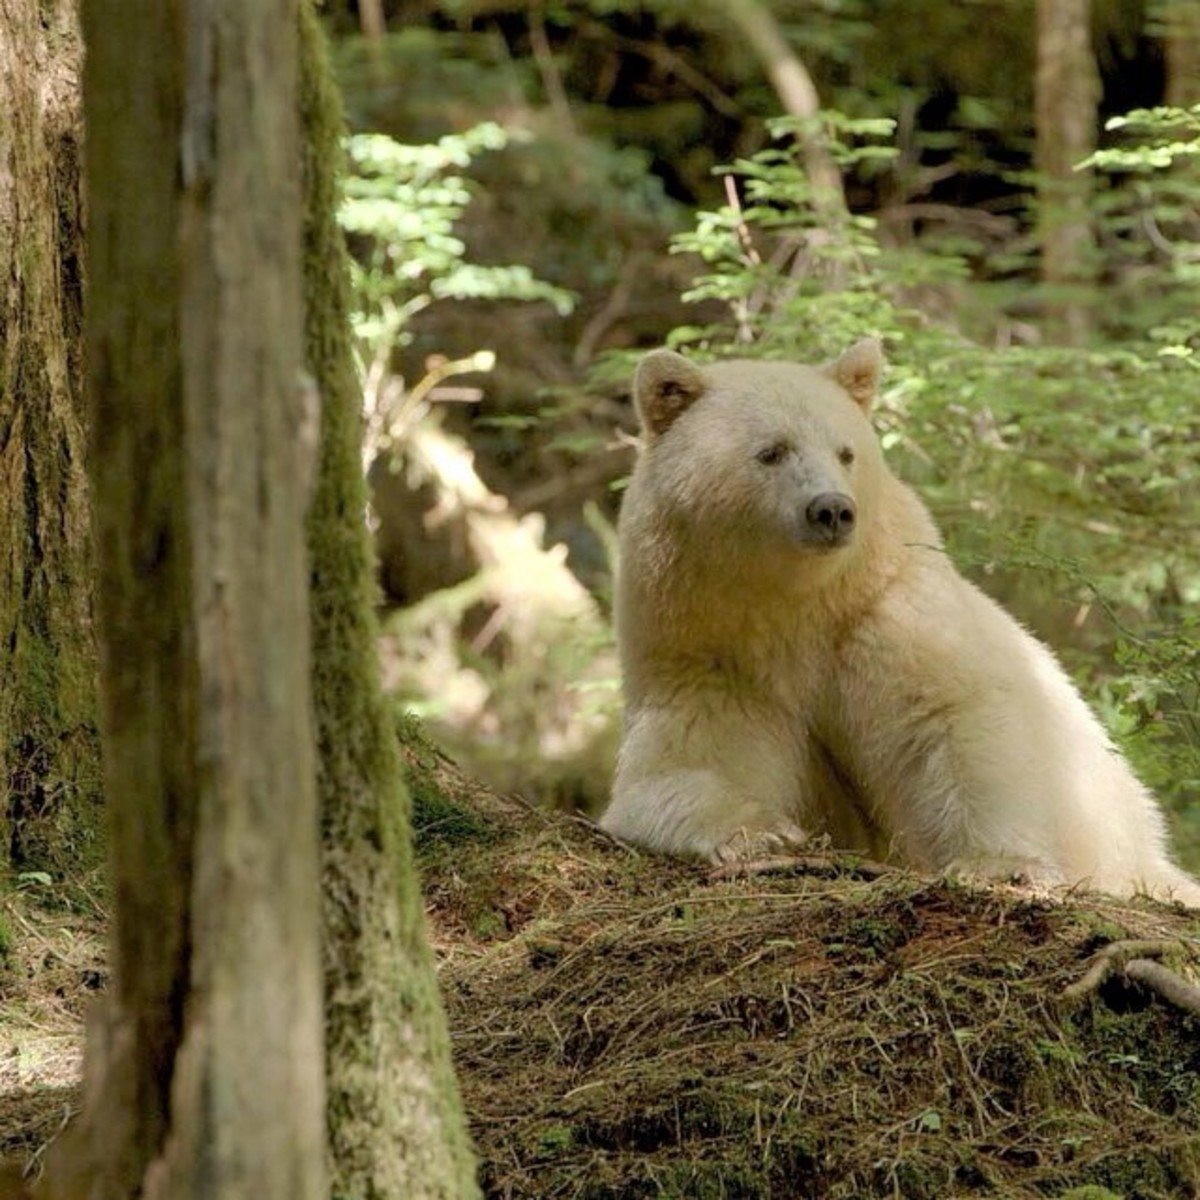 A spirit bear in the Great Bear Rainforest